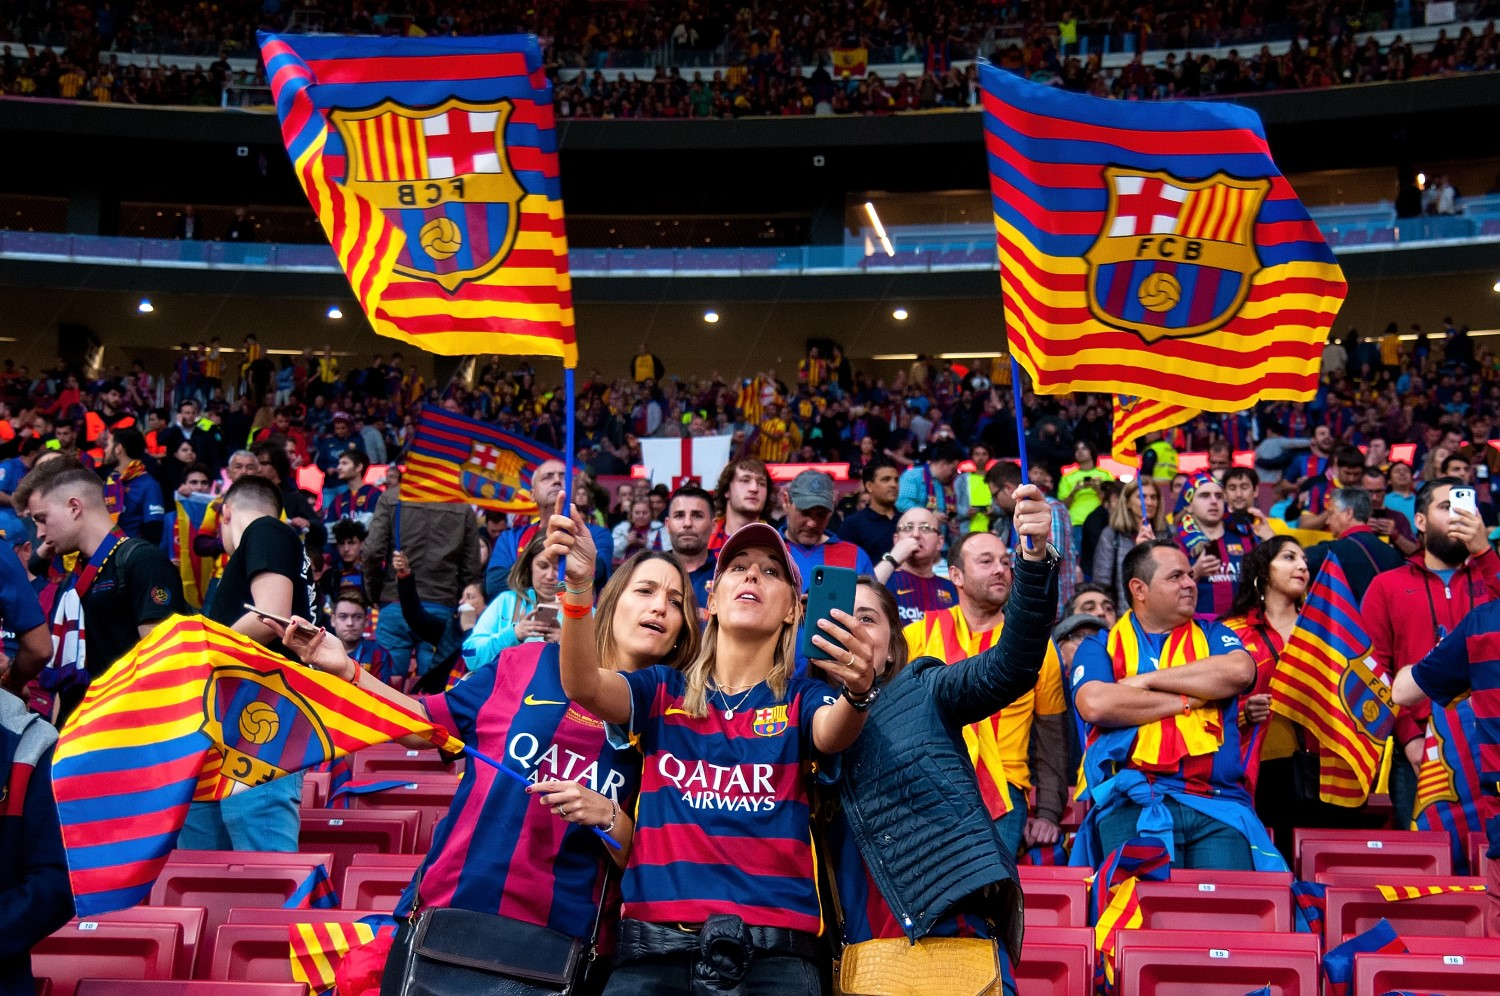 top soccer club fc barcelona launching crypto token for fan engagement coindesk fc barcelona launching crypto token